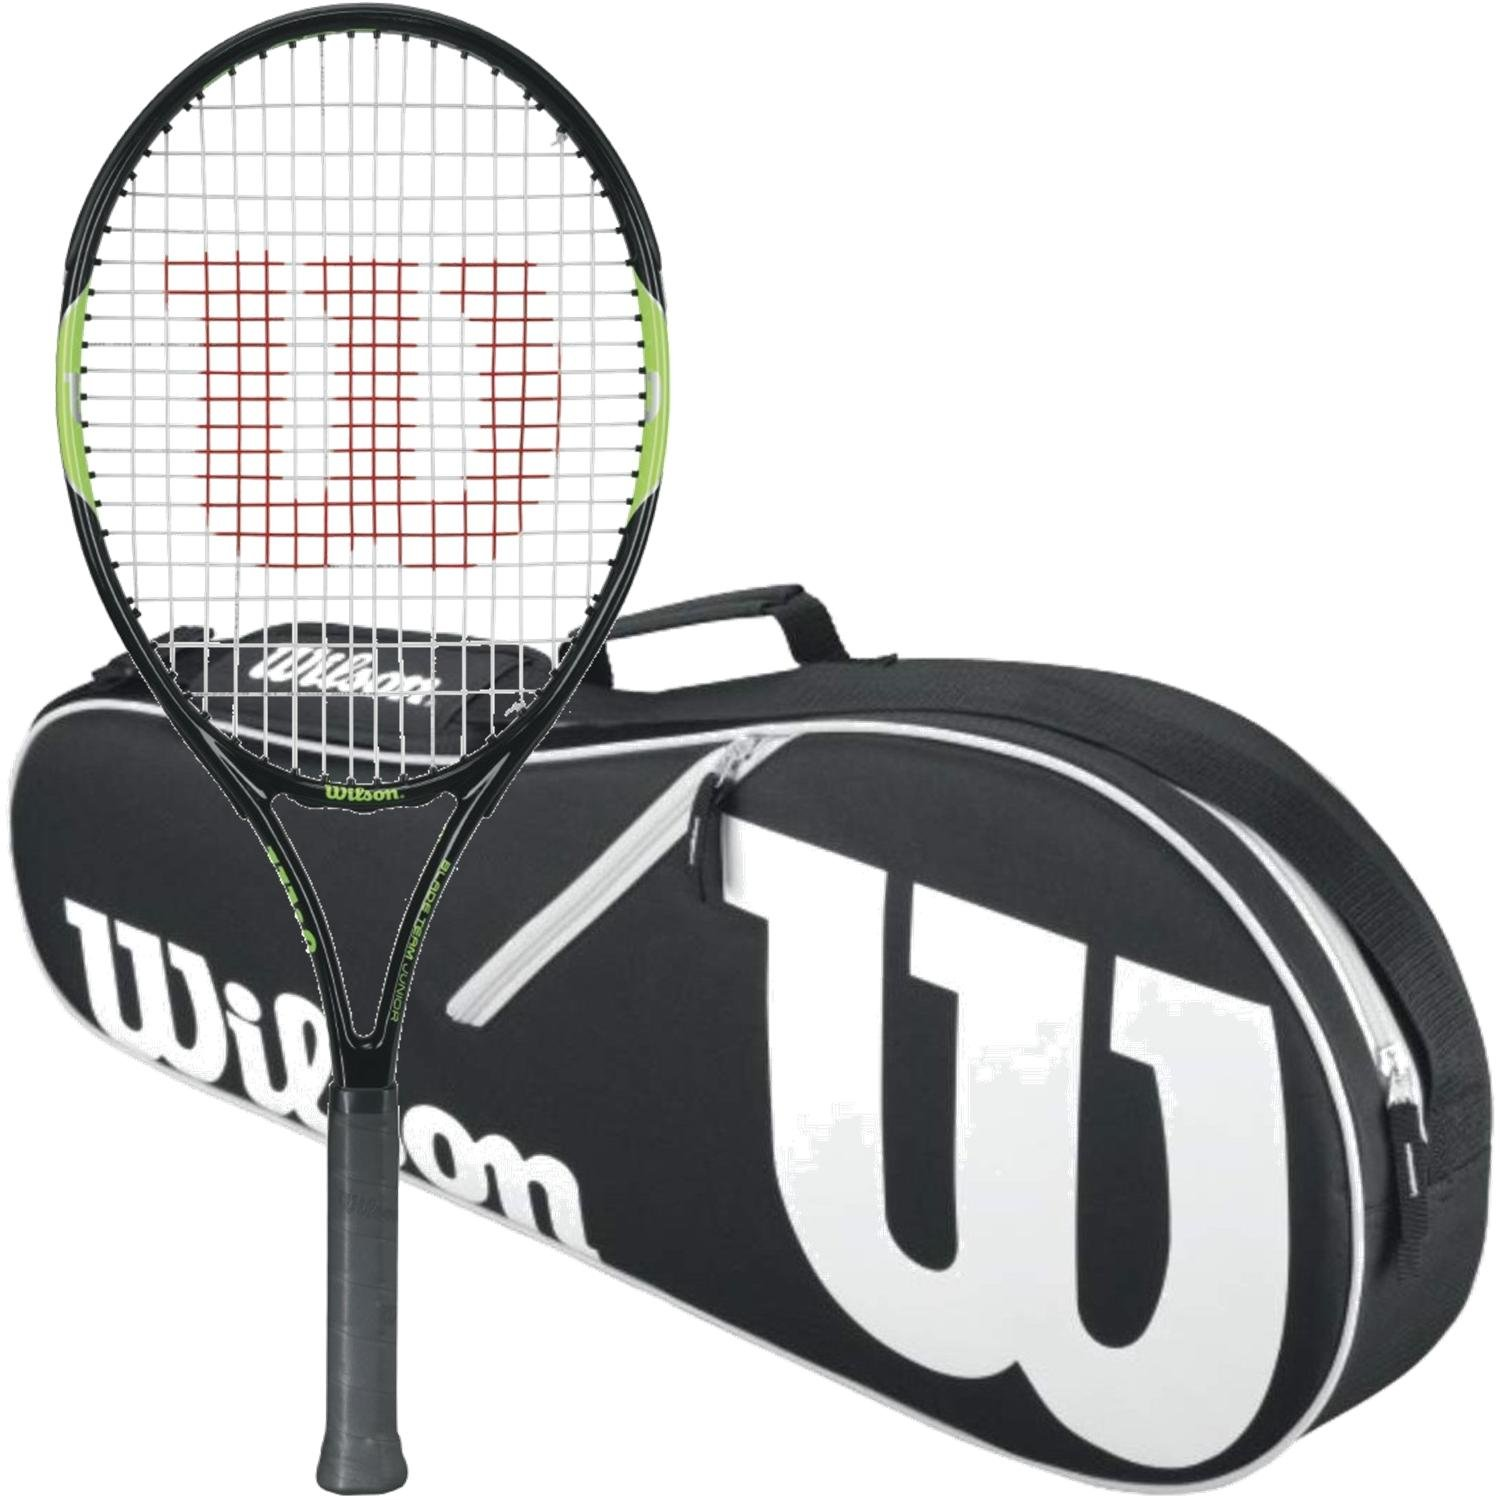 Wilson Blade Team Junior 26 Inch Black/Green Tennis Racquet bundled with a Black/White Advantage II Triple Tennis Bag